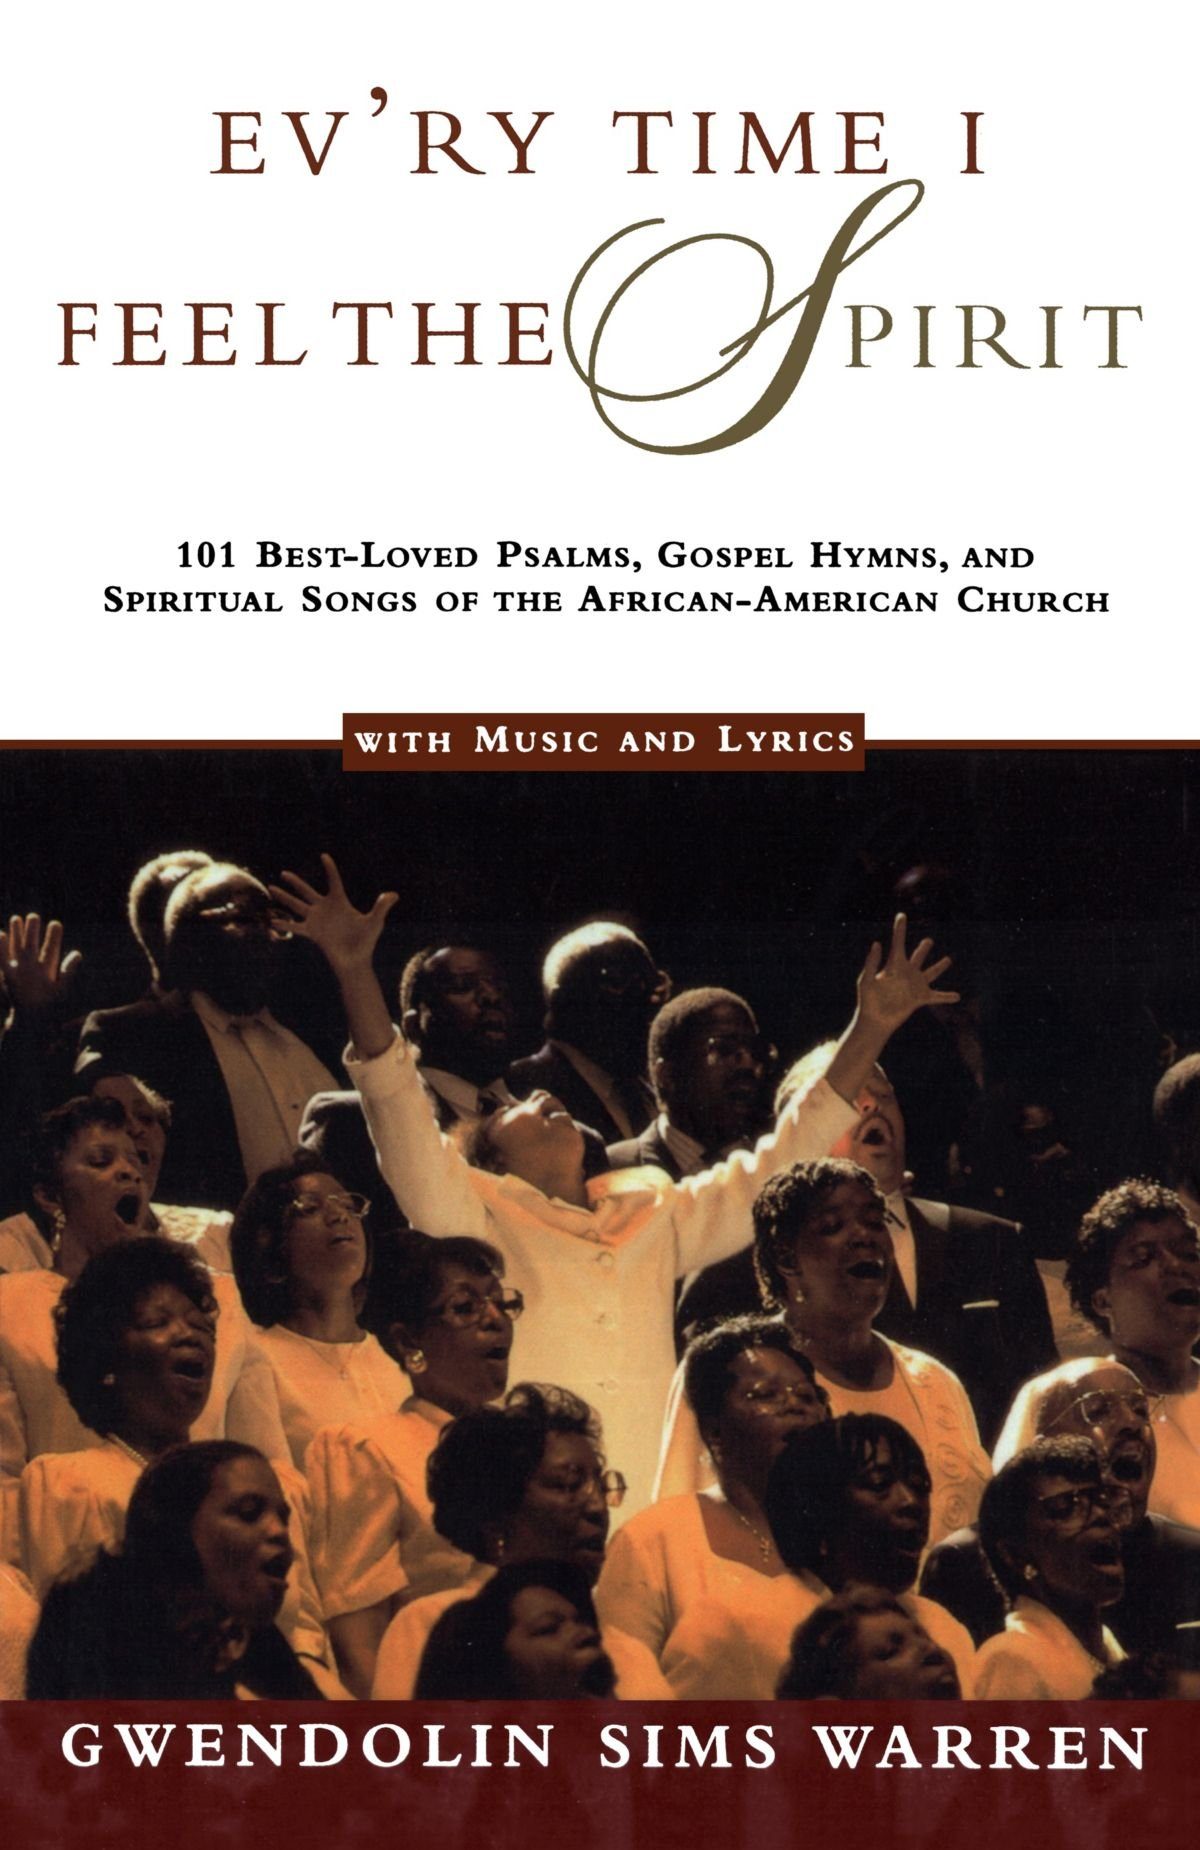 Ev'ry Time I Feel the Spirit: 101 Best-Loved Psalms, Gospel Hymns & Spiritual Songs of the African-American Church: Gwendolin Sims Warren: 9780805044119: ...